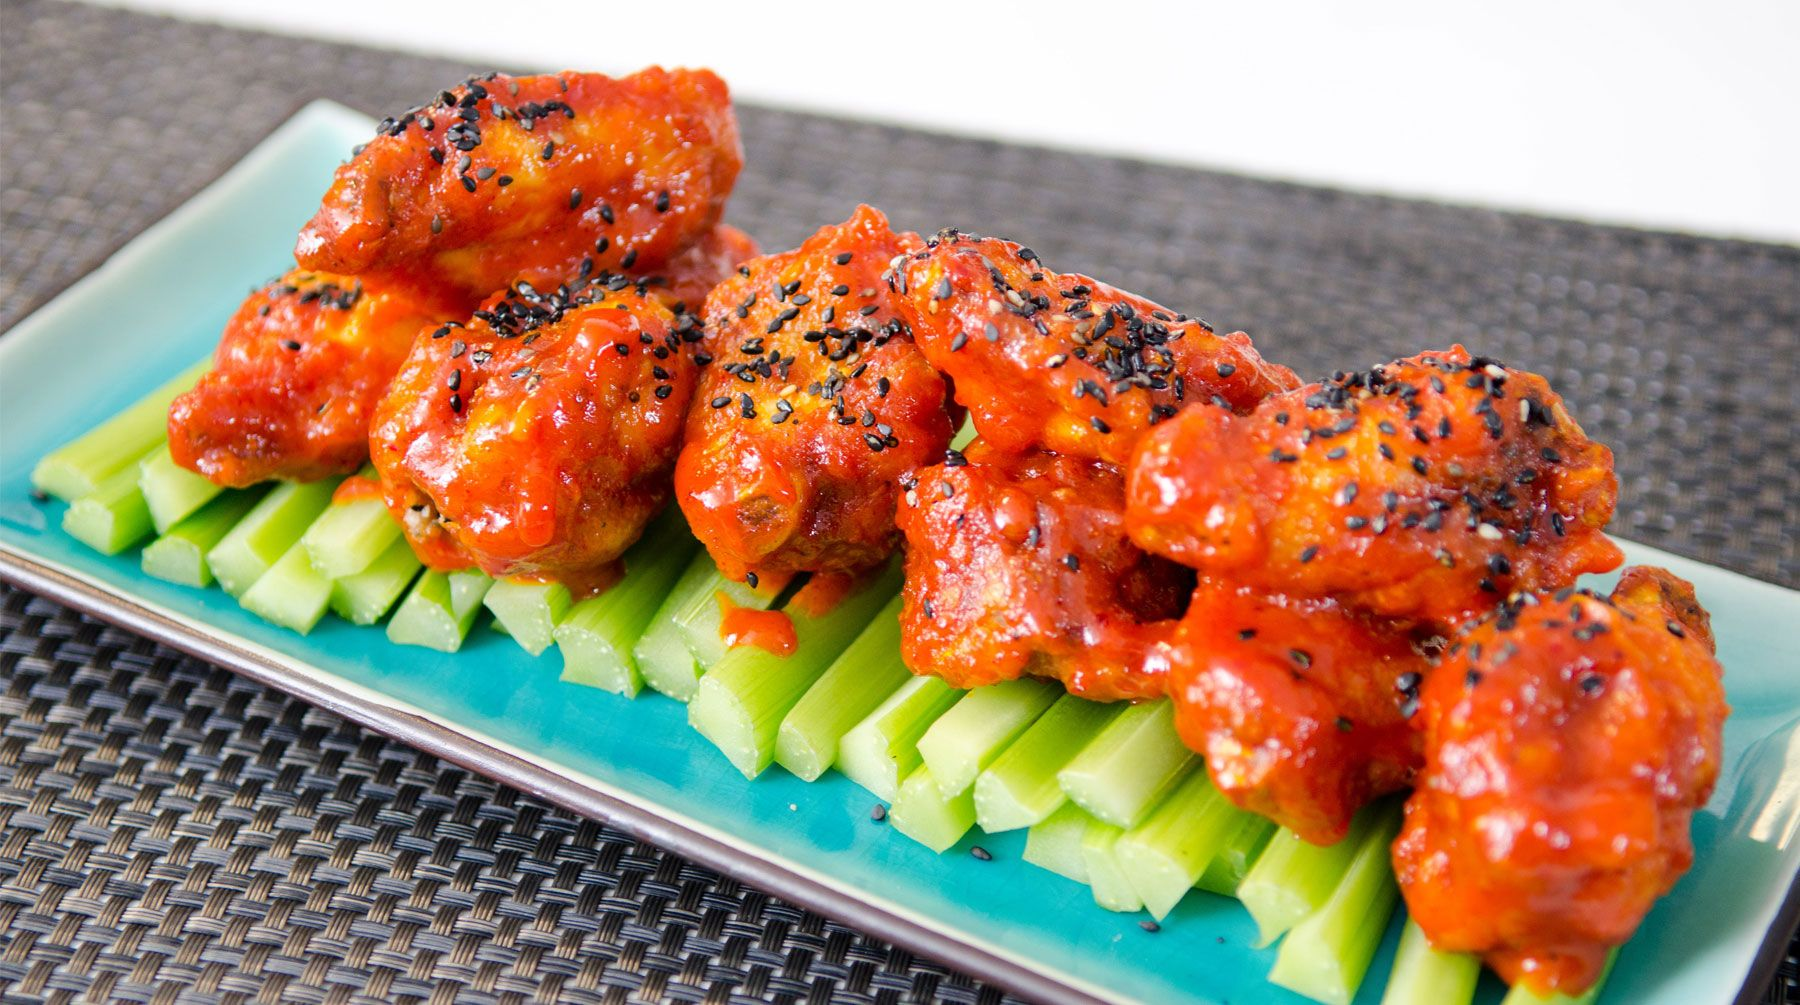 Try This Quick And Easy Chicken Wing Recipe By Judy Joo From Korean Food Made Simple